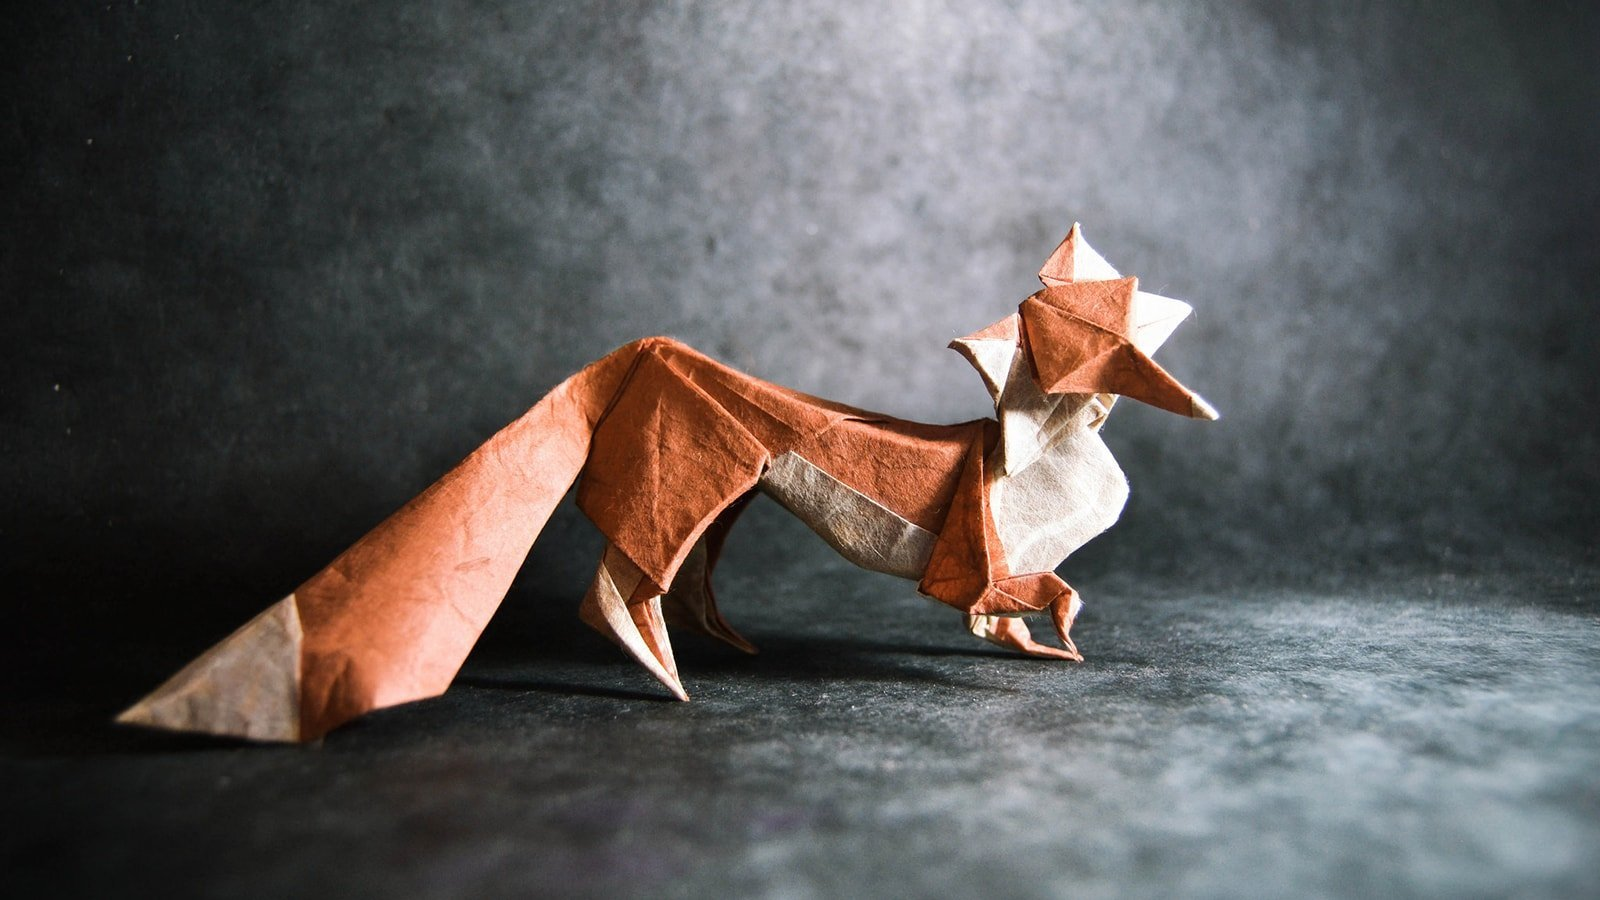 How To Make An Origami Fox Puppet - Folding Instructions - Origami ... | 900x1600